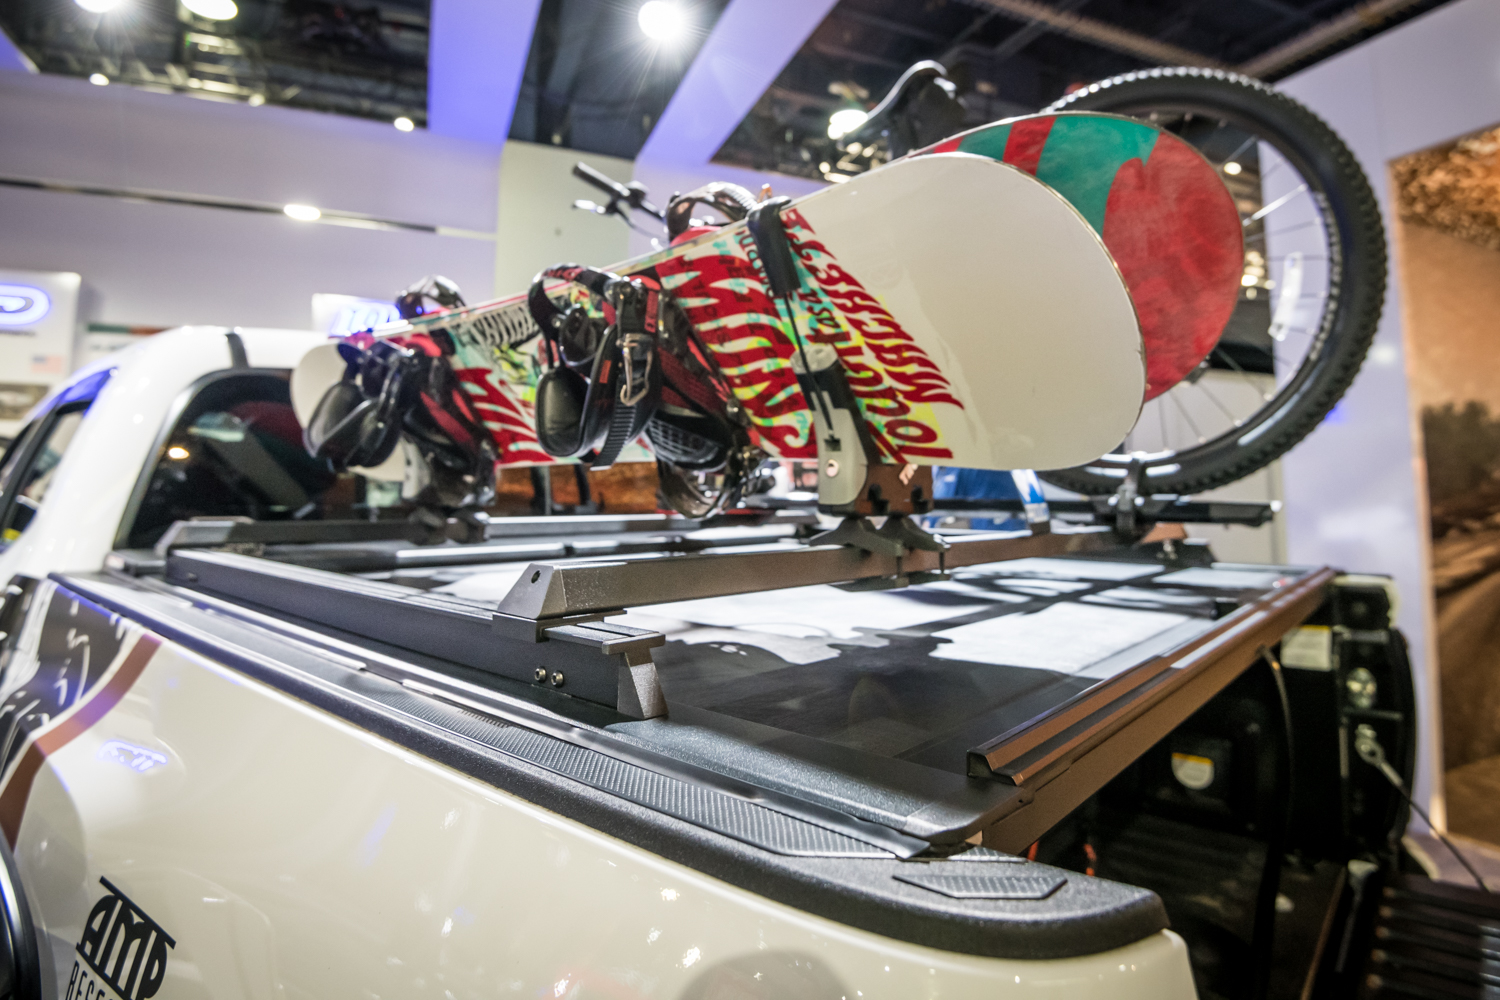 SEMA 2018: Hot New Off-Road Gear for Your Truck, Car, or Van